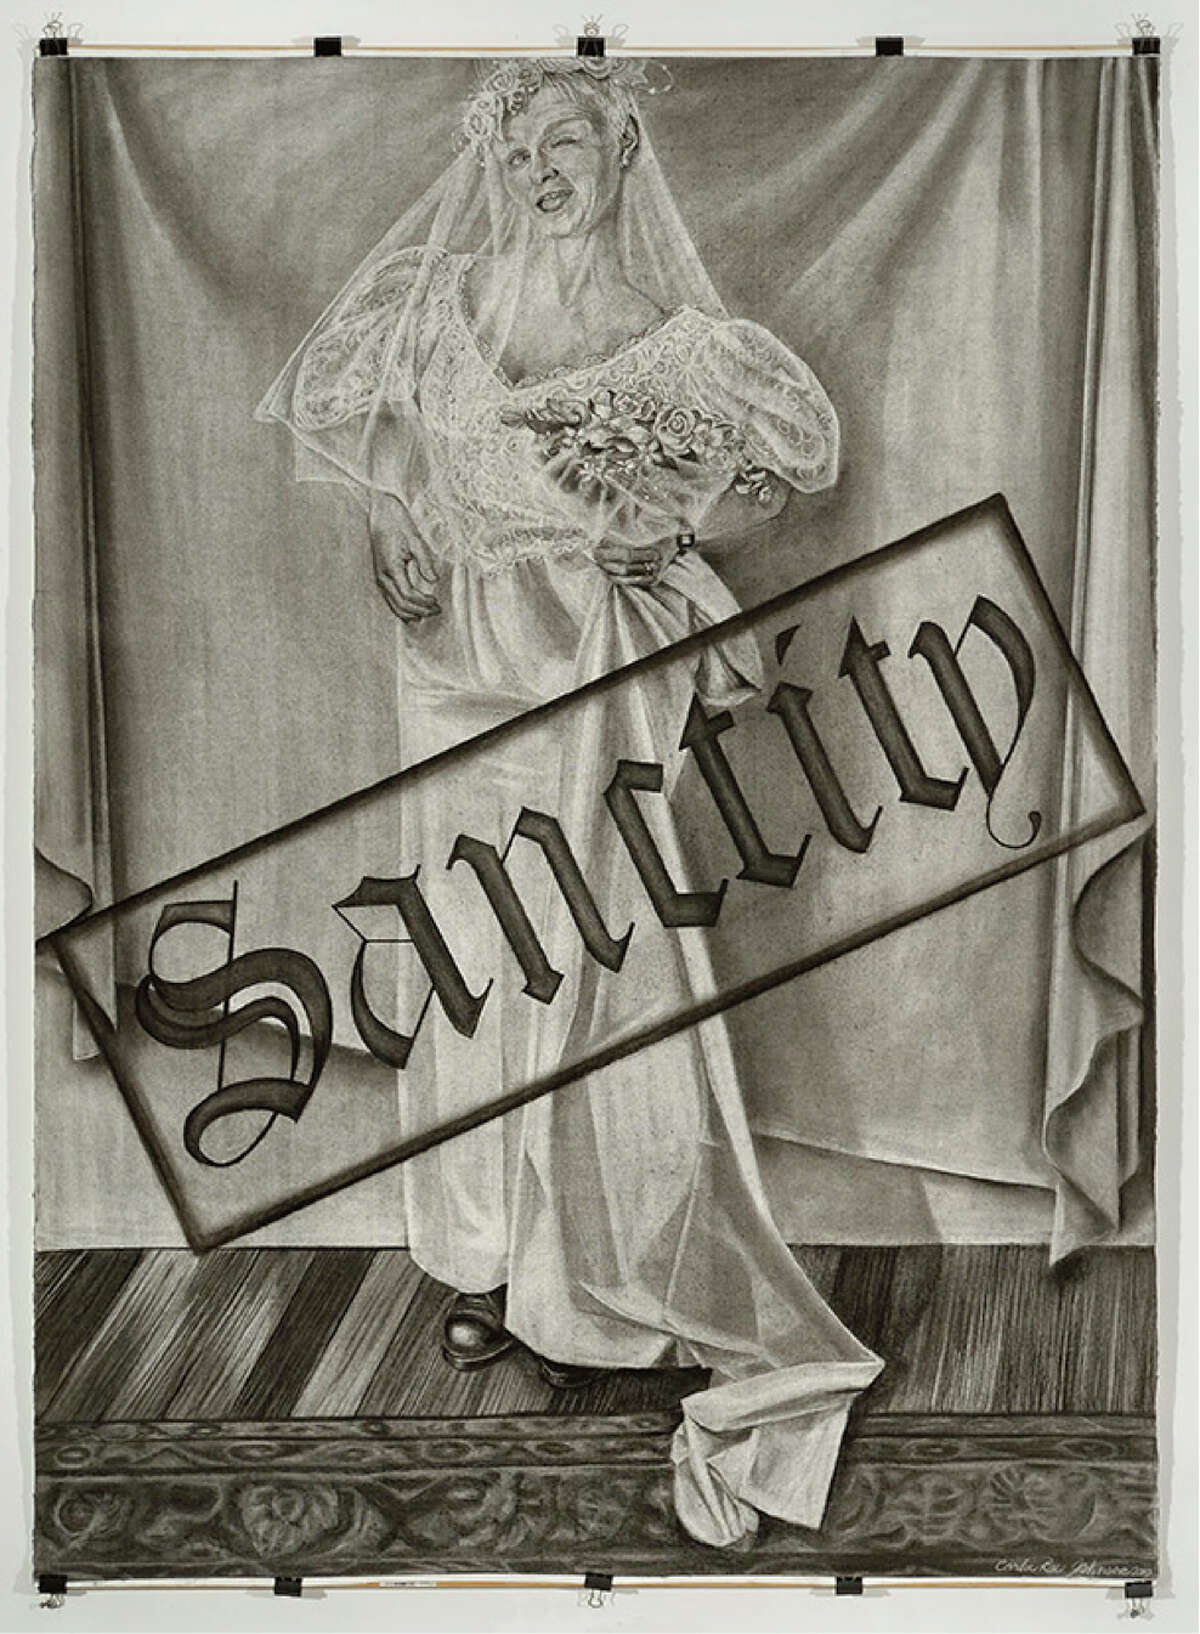 Carla Rae Johnson, Portrait of the Artist as an Arrogant America Series, Sanctity, 2010, charcoal on paper